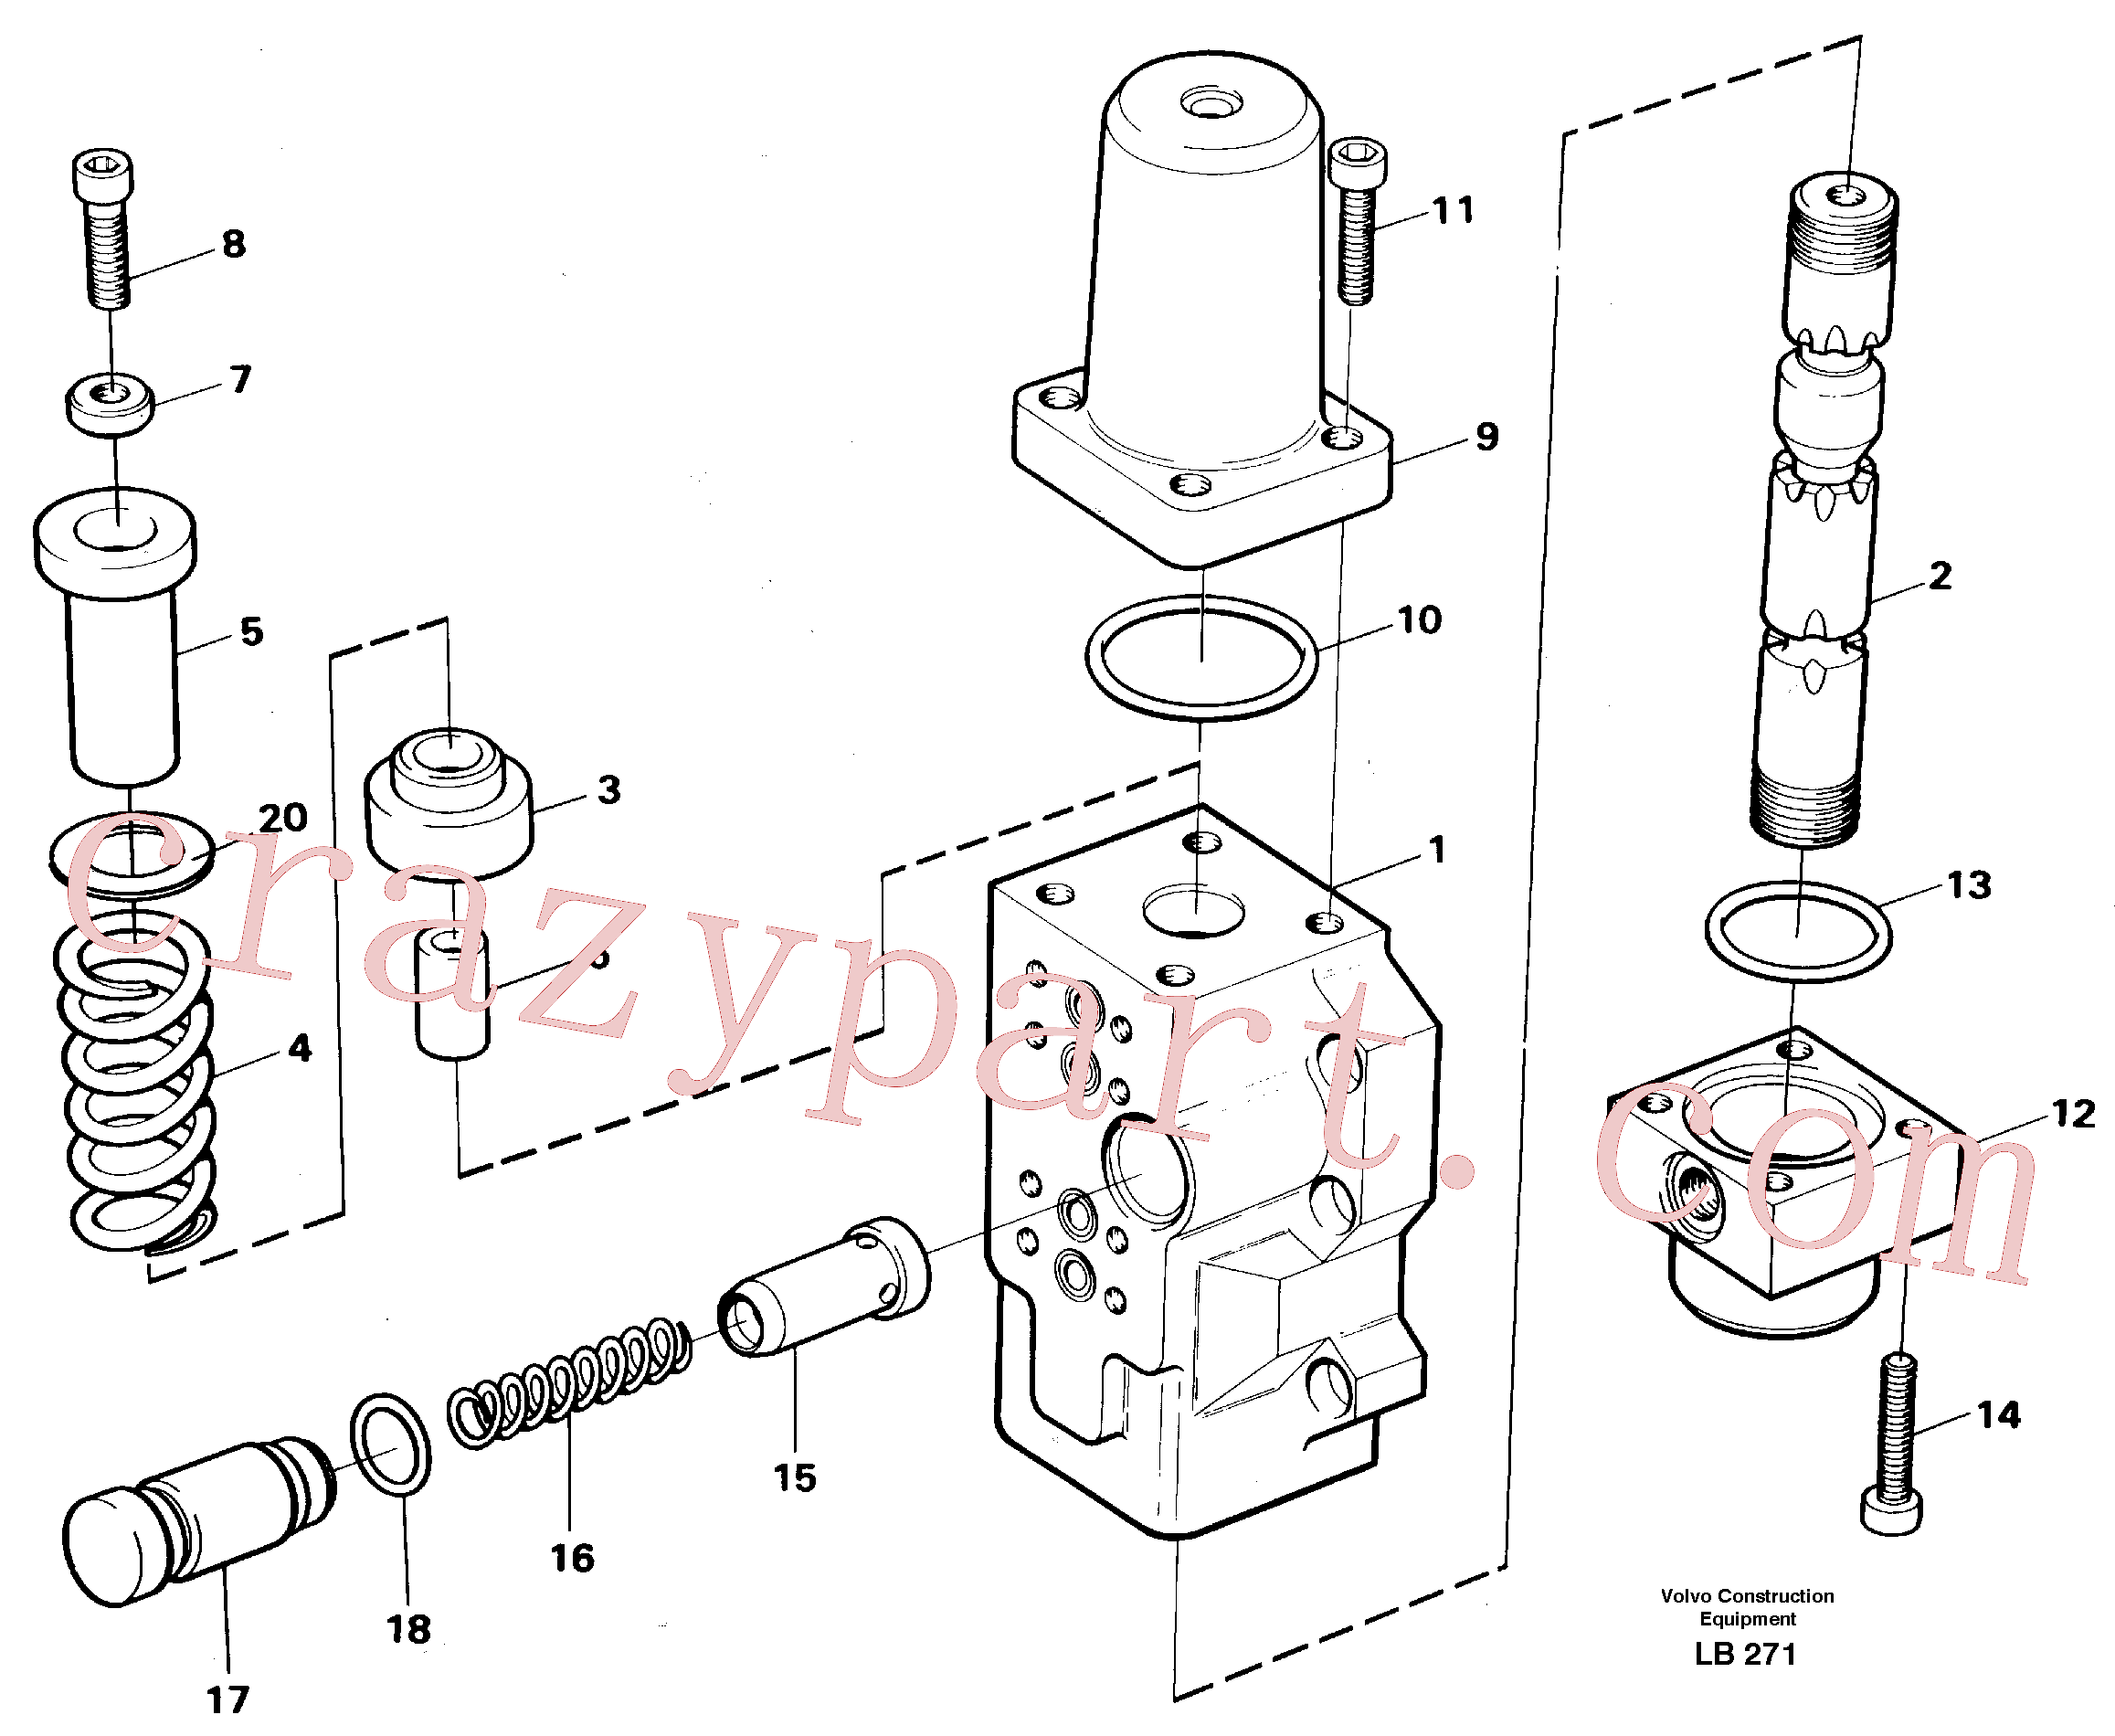 VOE14040428 for Volvo Four-way valve for slewing(LB271 assembly)